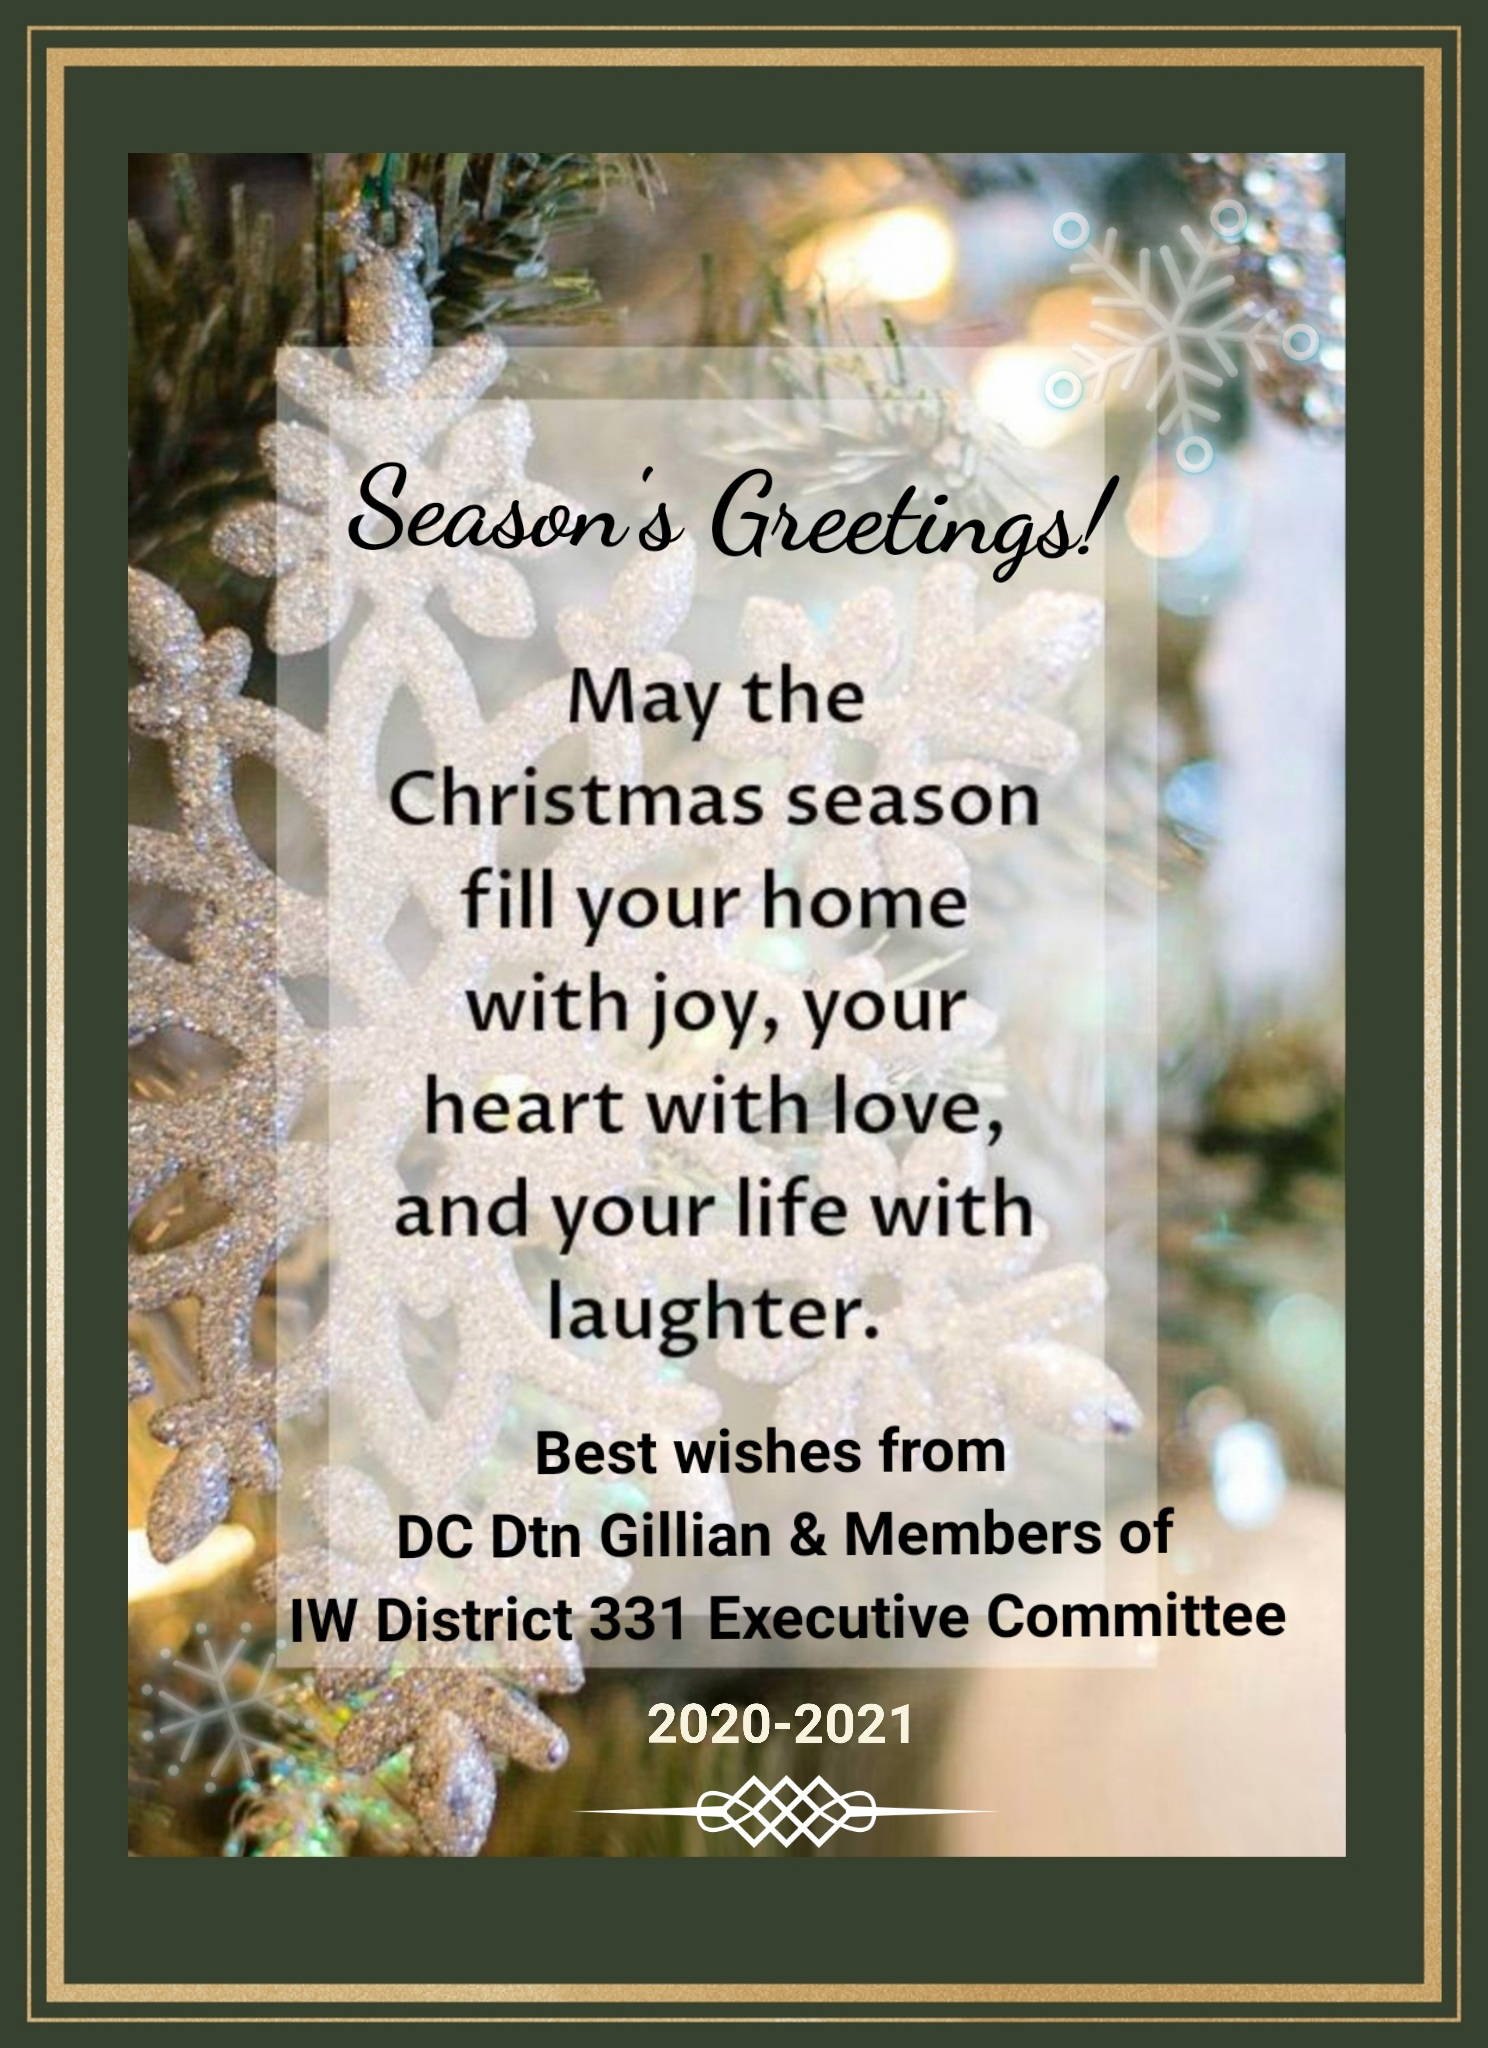 24 Dec 2020. Season's Greetings from District Executive Committee.